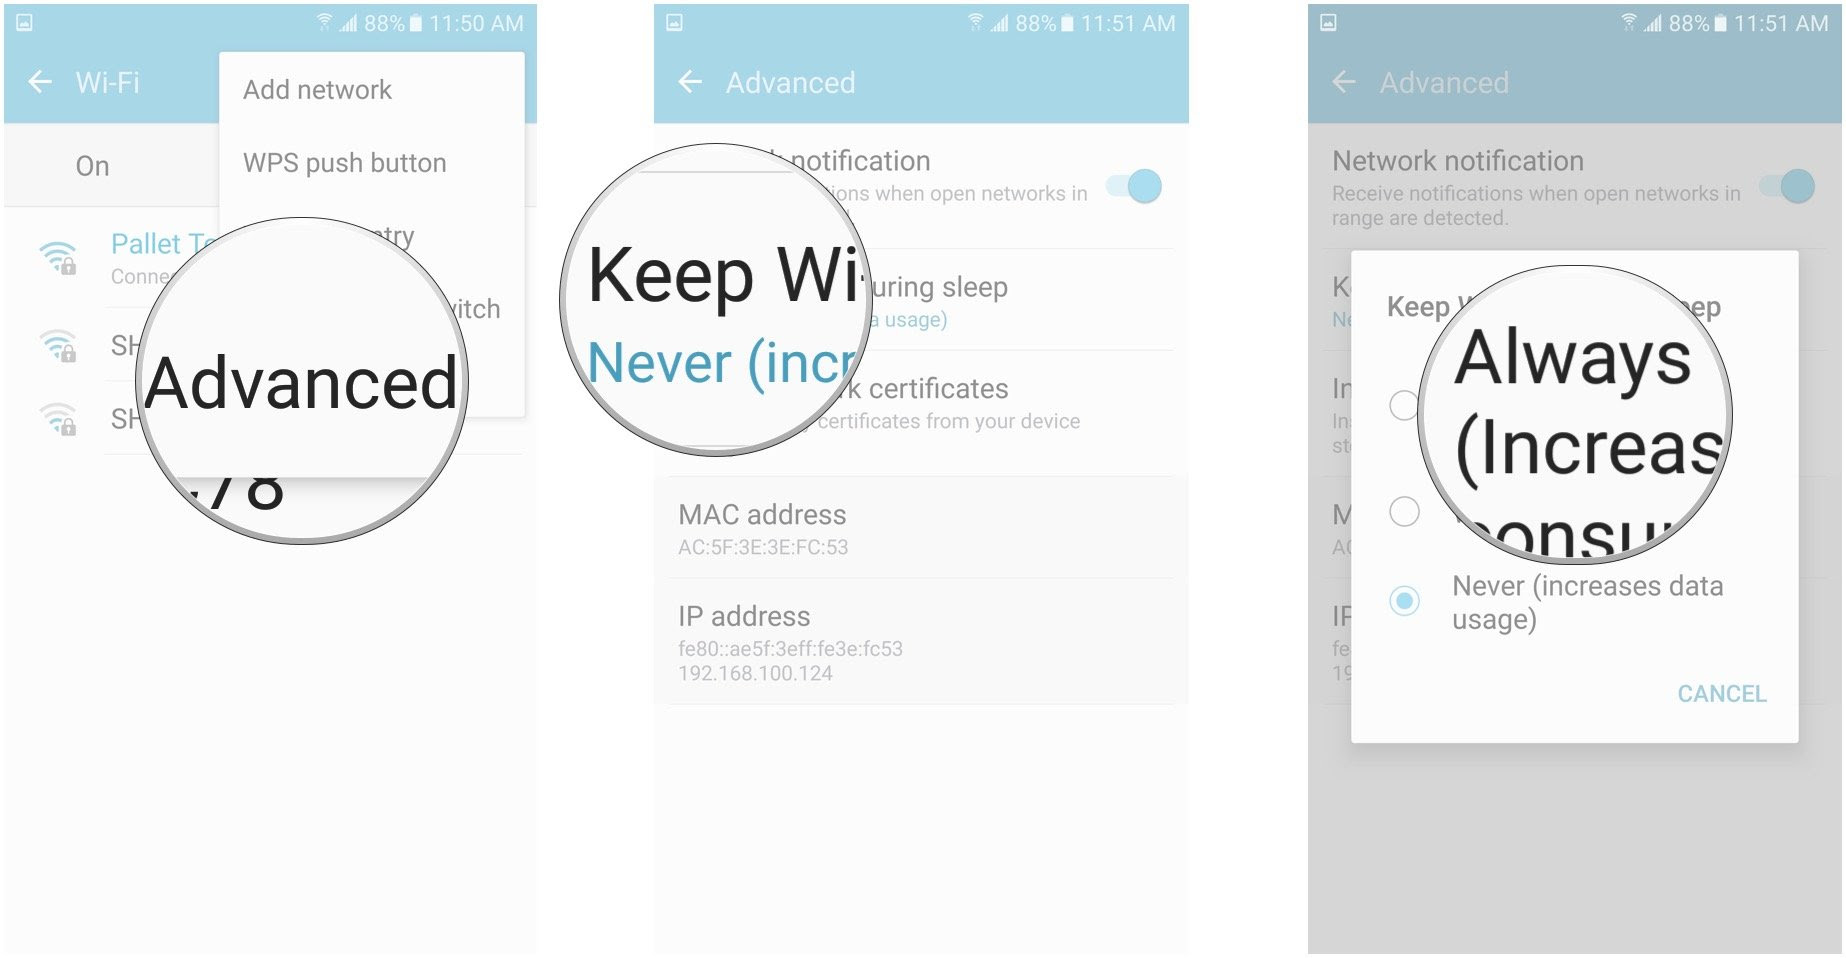 tap Advanced, tap Keep Wi-Fi on during sleep, tap Always